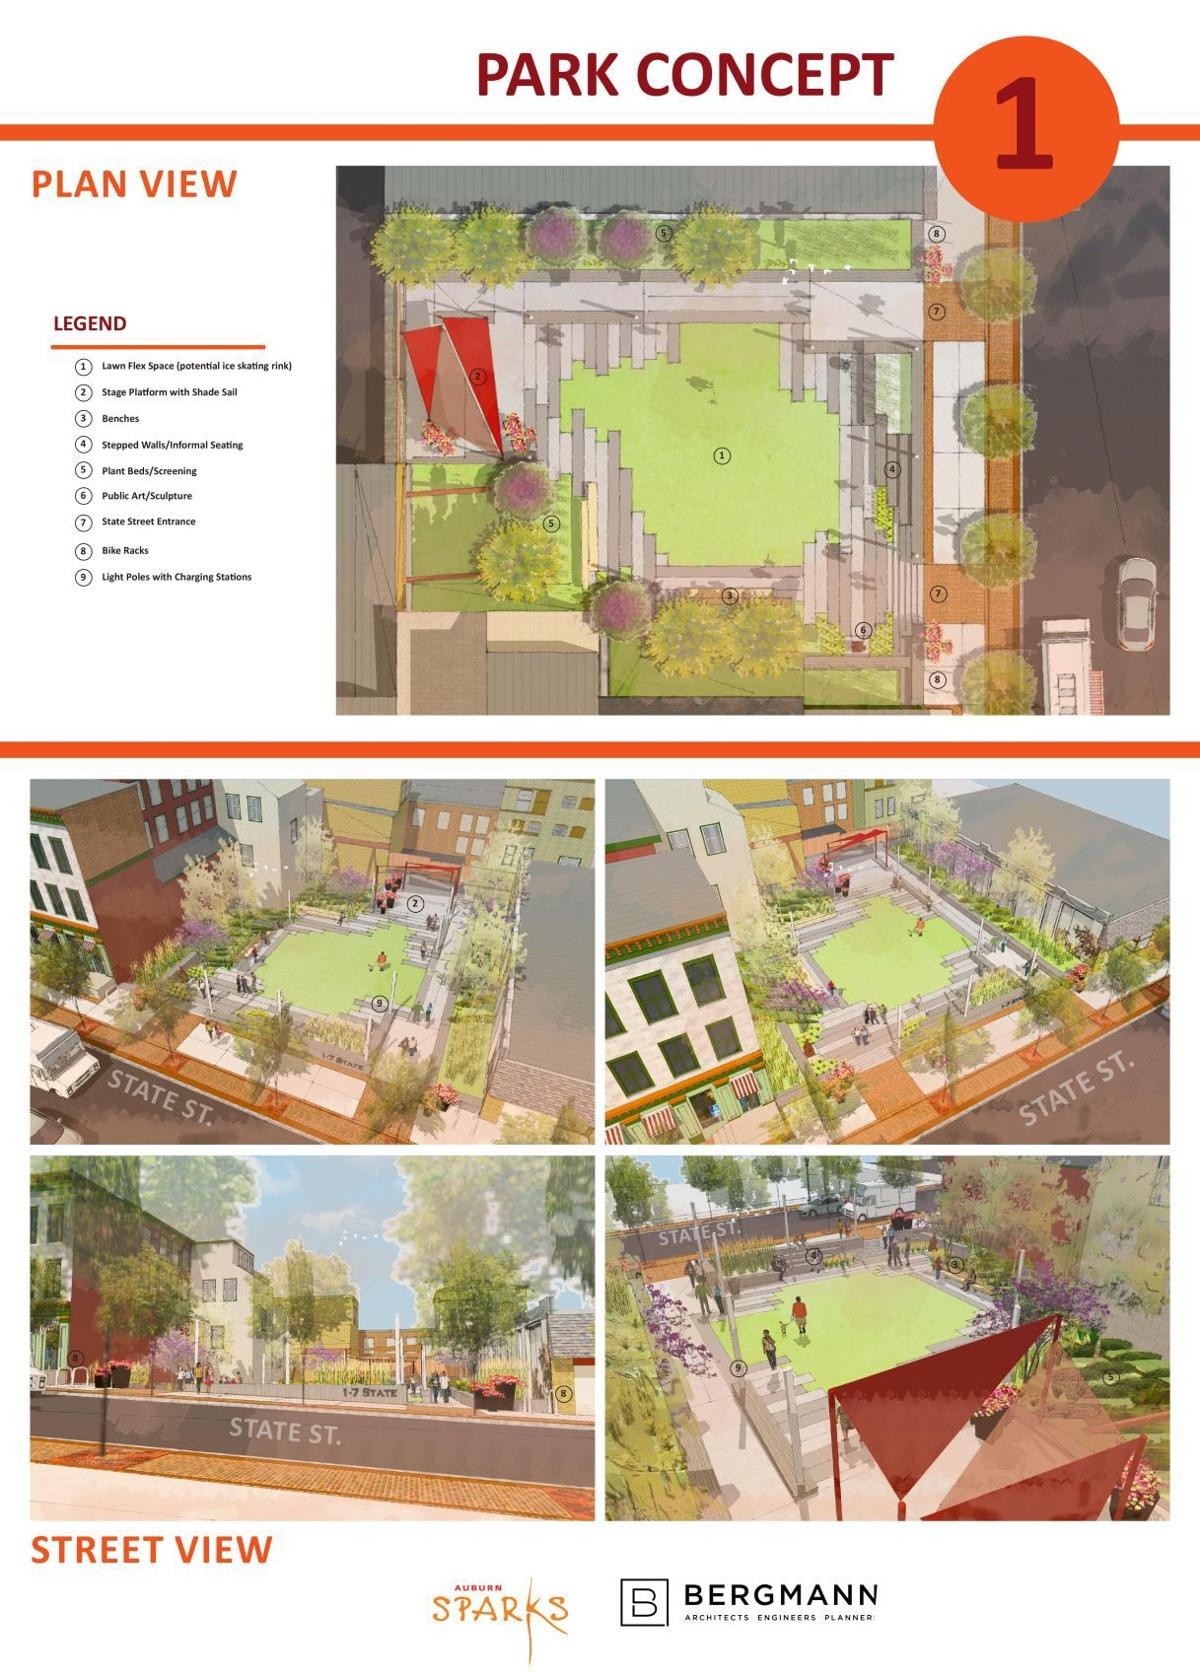 Park design concepts for 1-7 State St.